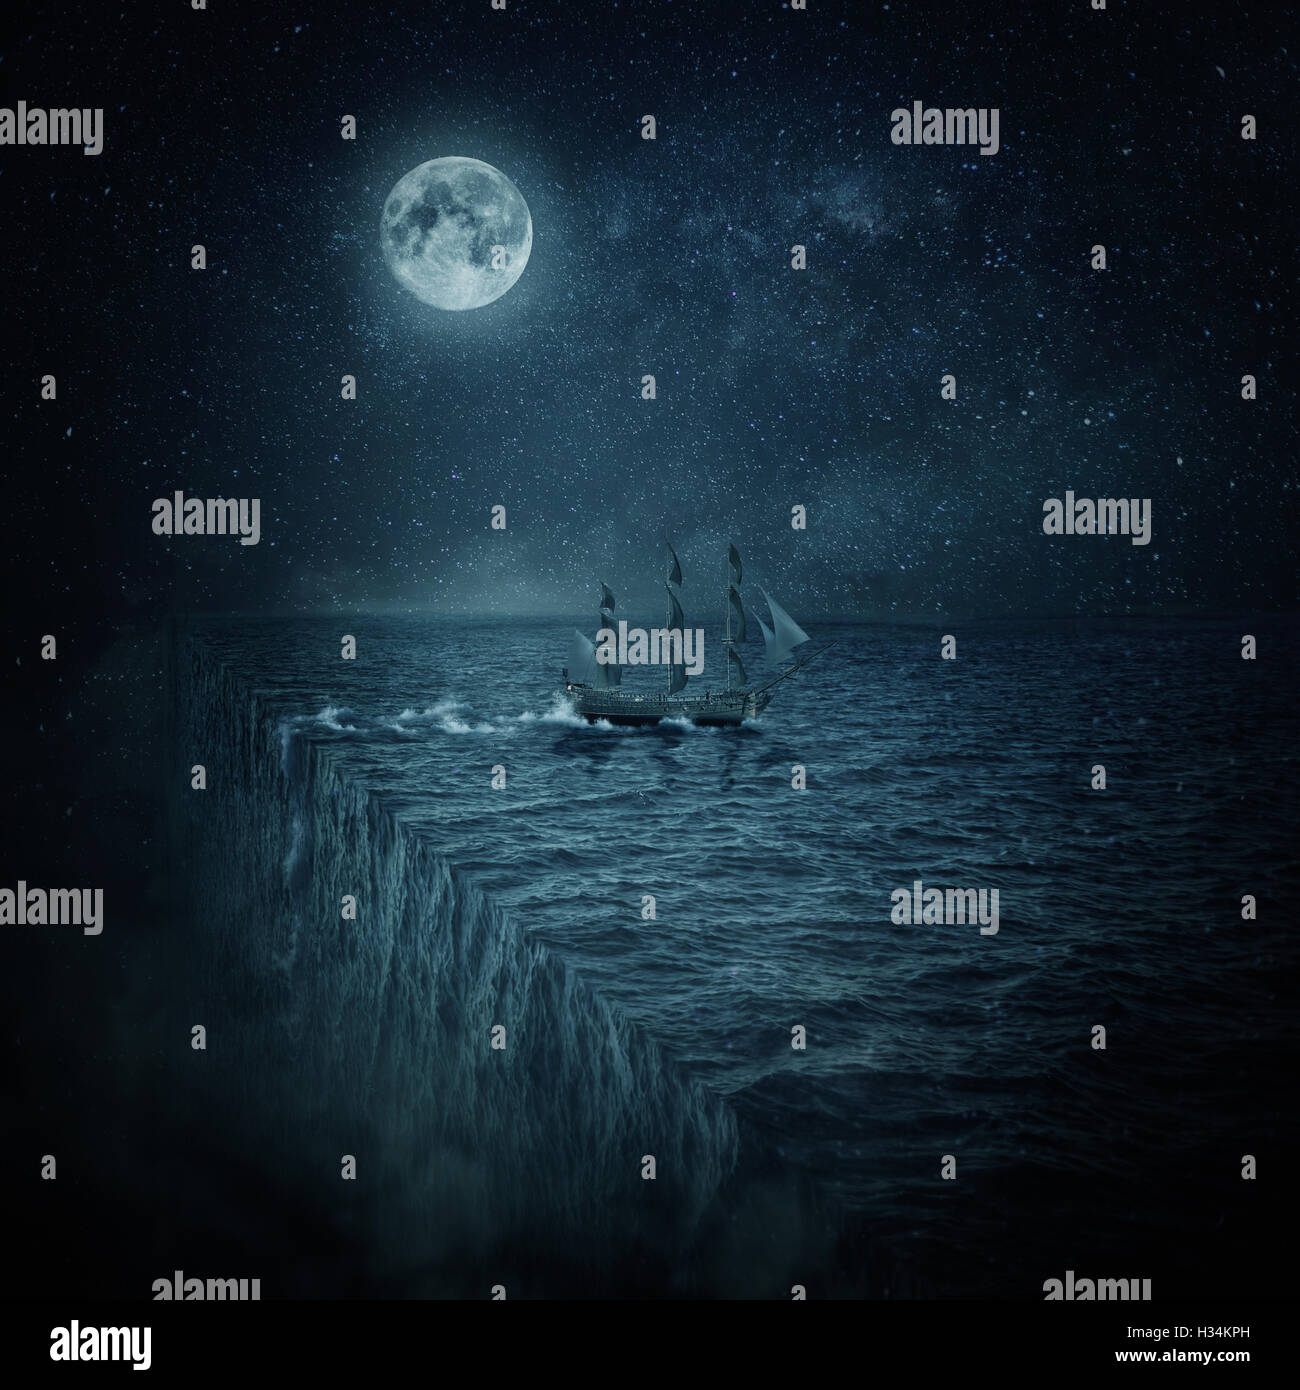 Vintage, old ship sailing lost in the ocean at night. Adventure and journey concept. Parallel universe, multiverse - Stock Image